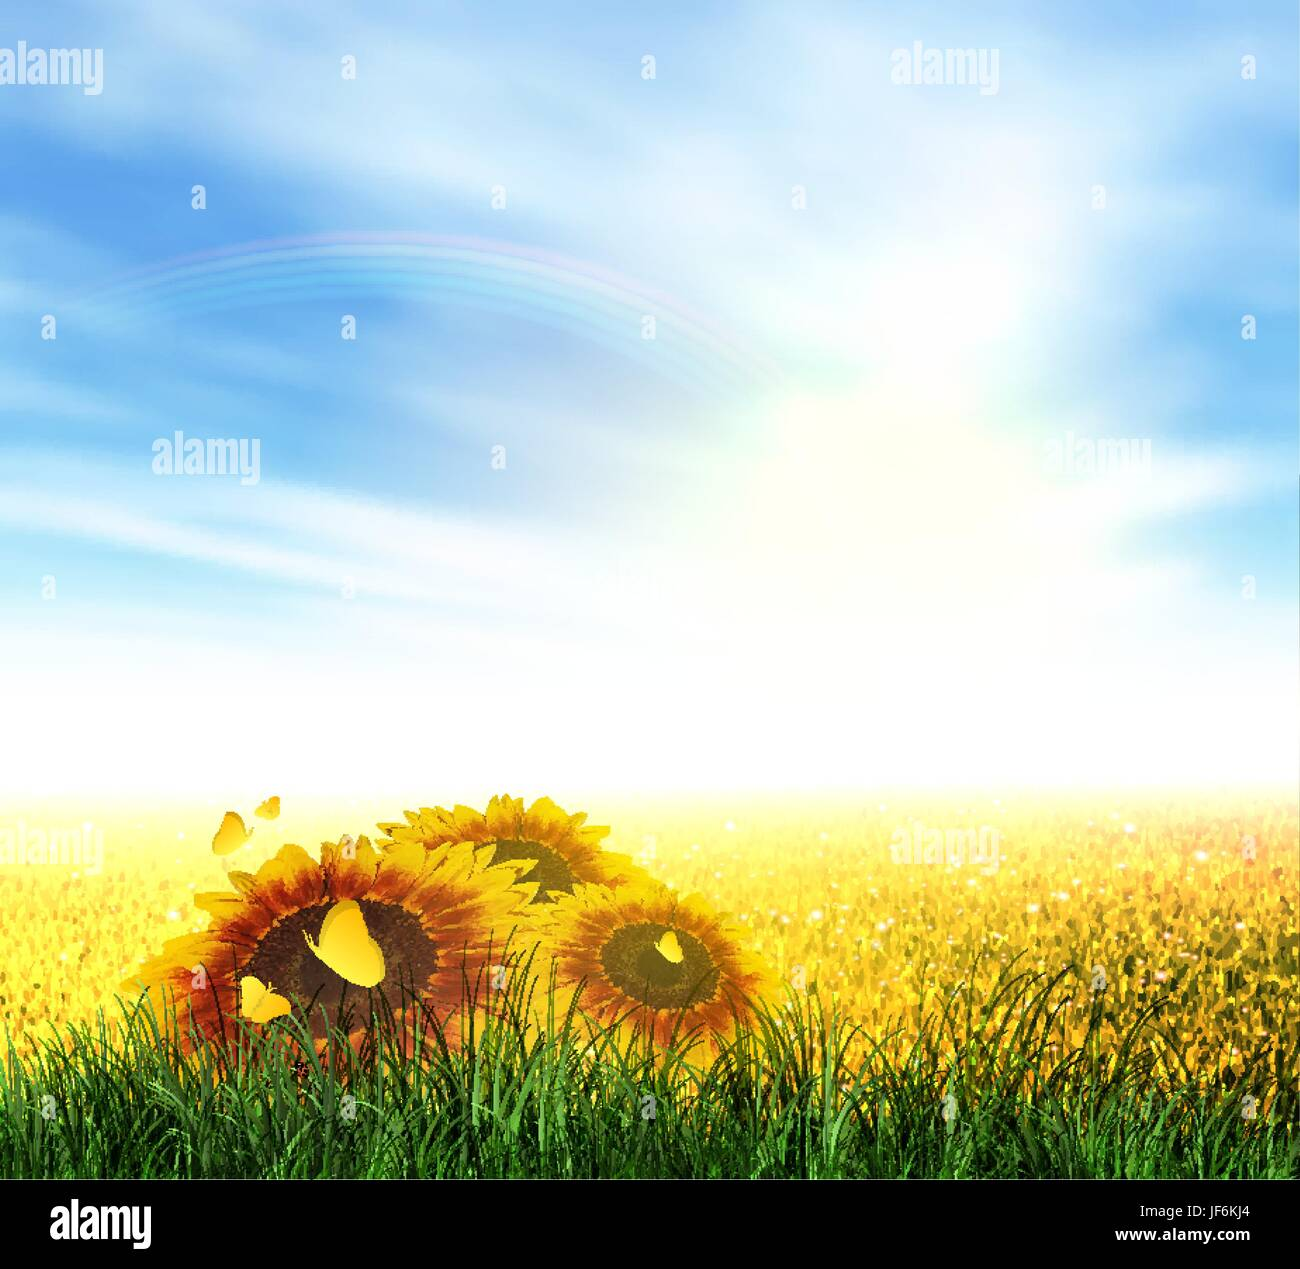 field, summer, summerly, flower, sunflower, plant, rainbow, landscape, scenery, - Stock Vector